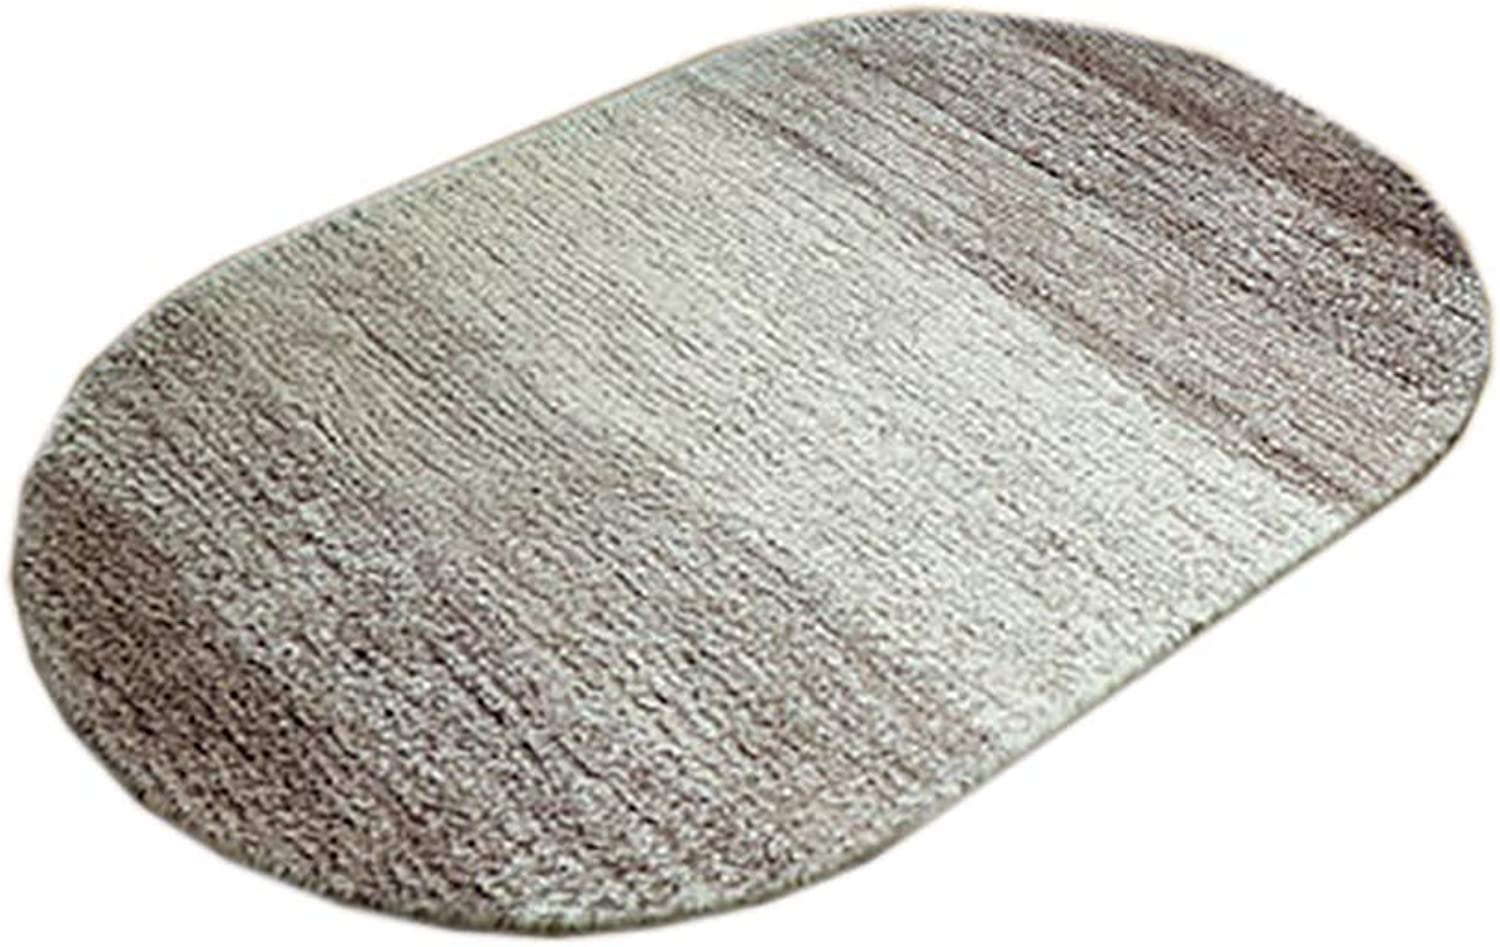 Door mat,Entrance Door mats Super Soft Rug Elliptical Door mat Bathroom Non-Slip mat- Light Brown 50x80cm(20x31inch)